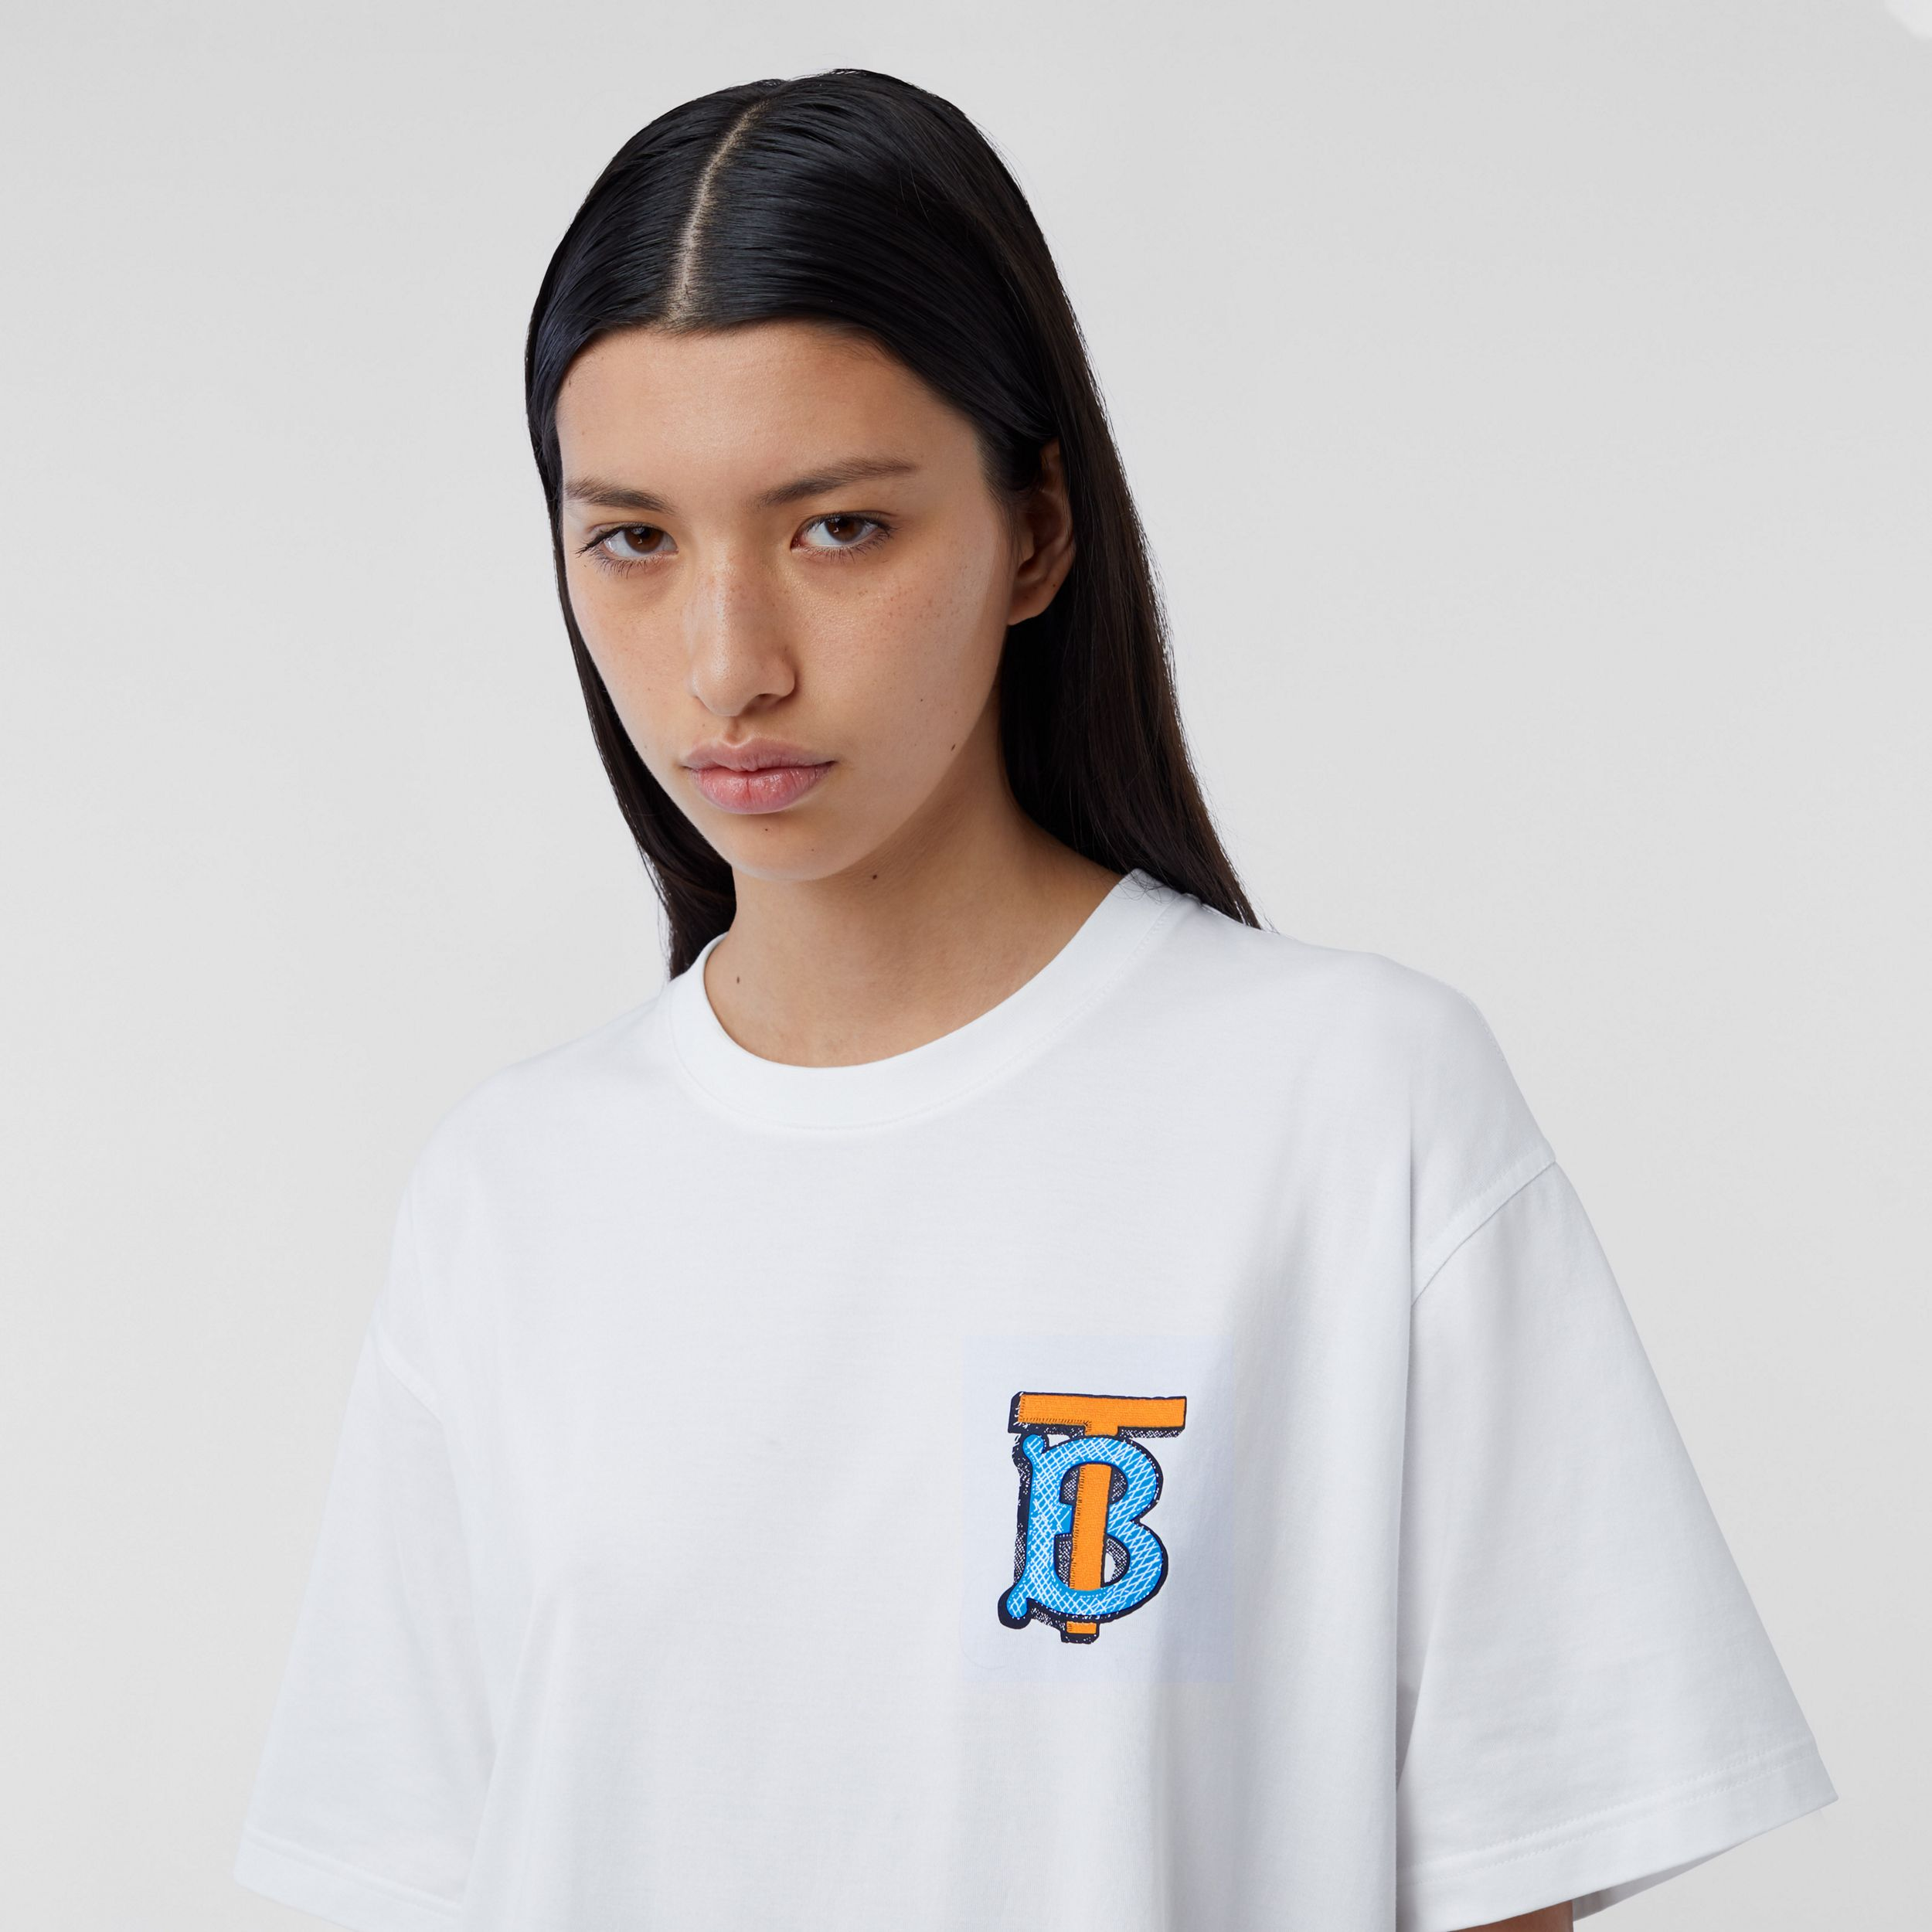 Monogram Motif Cotton T-shirt – Unisex in White | Burberry Australia - 2